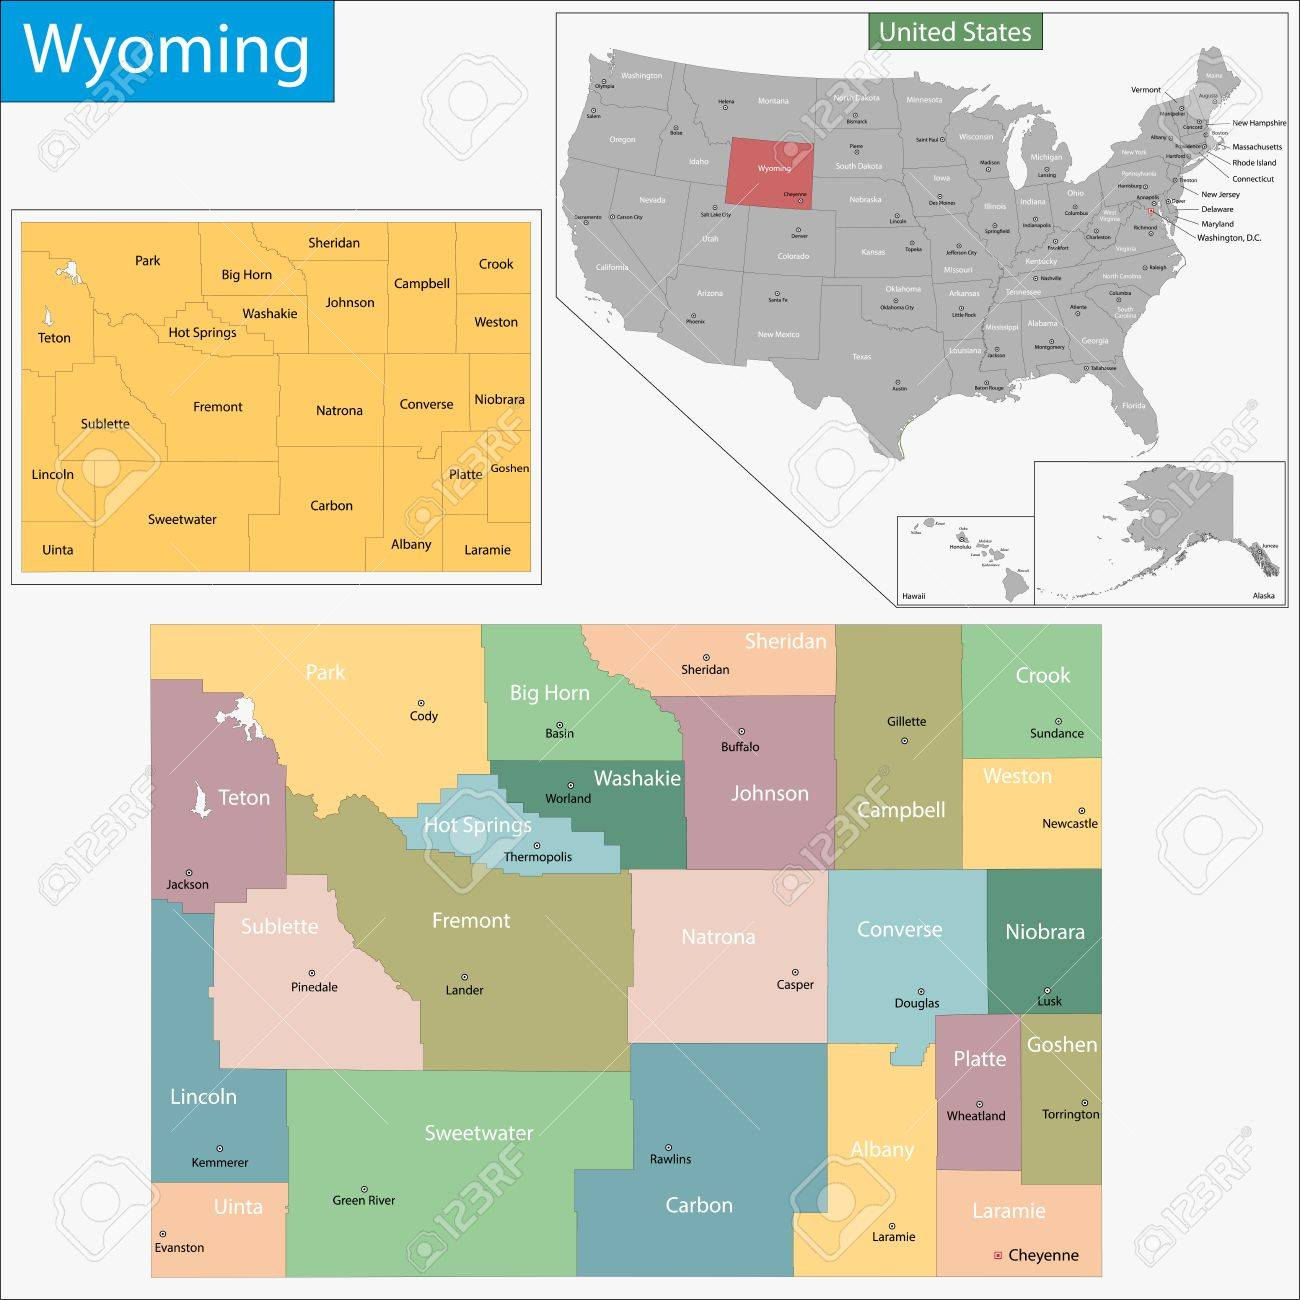 Map Of Wyoming State Designed In Illustration With The Counties - Map wyoming counties